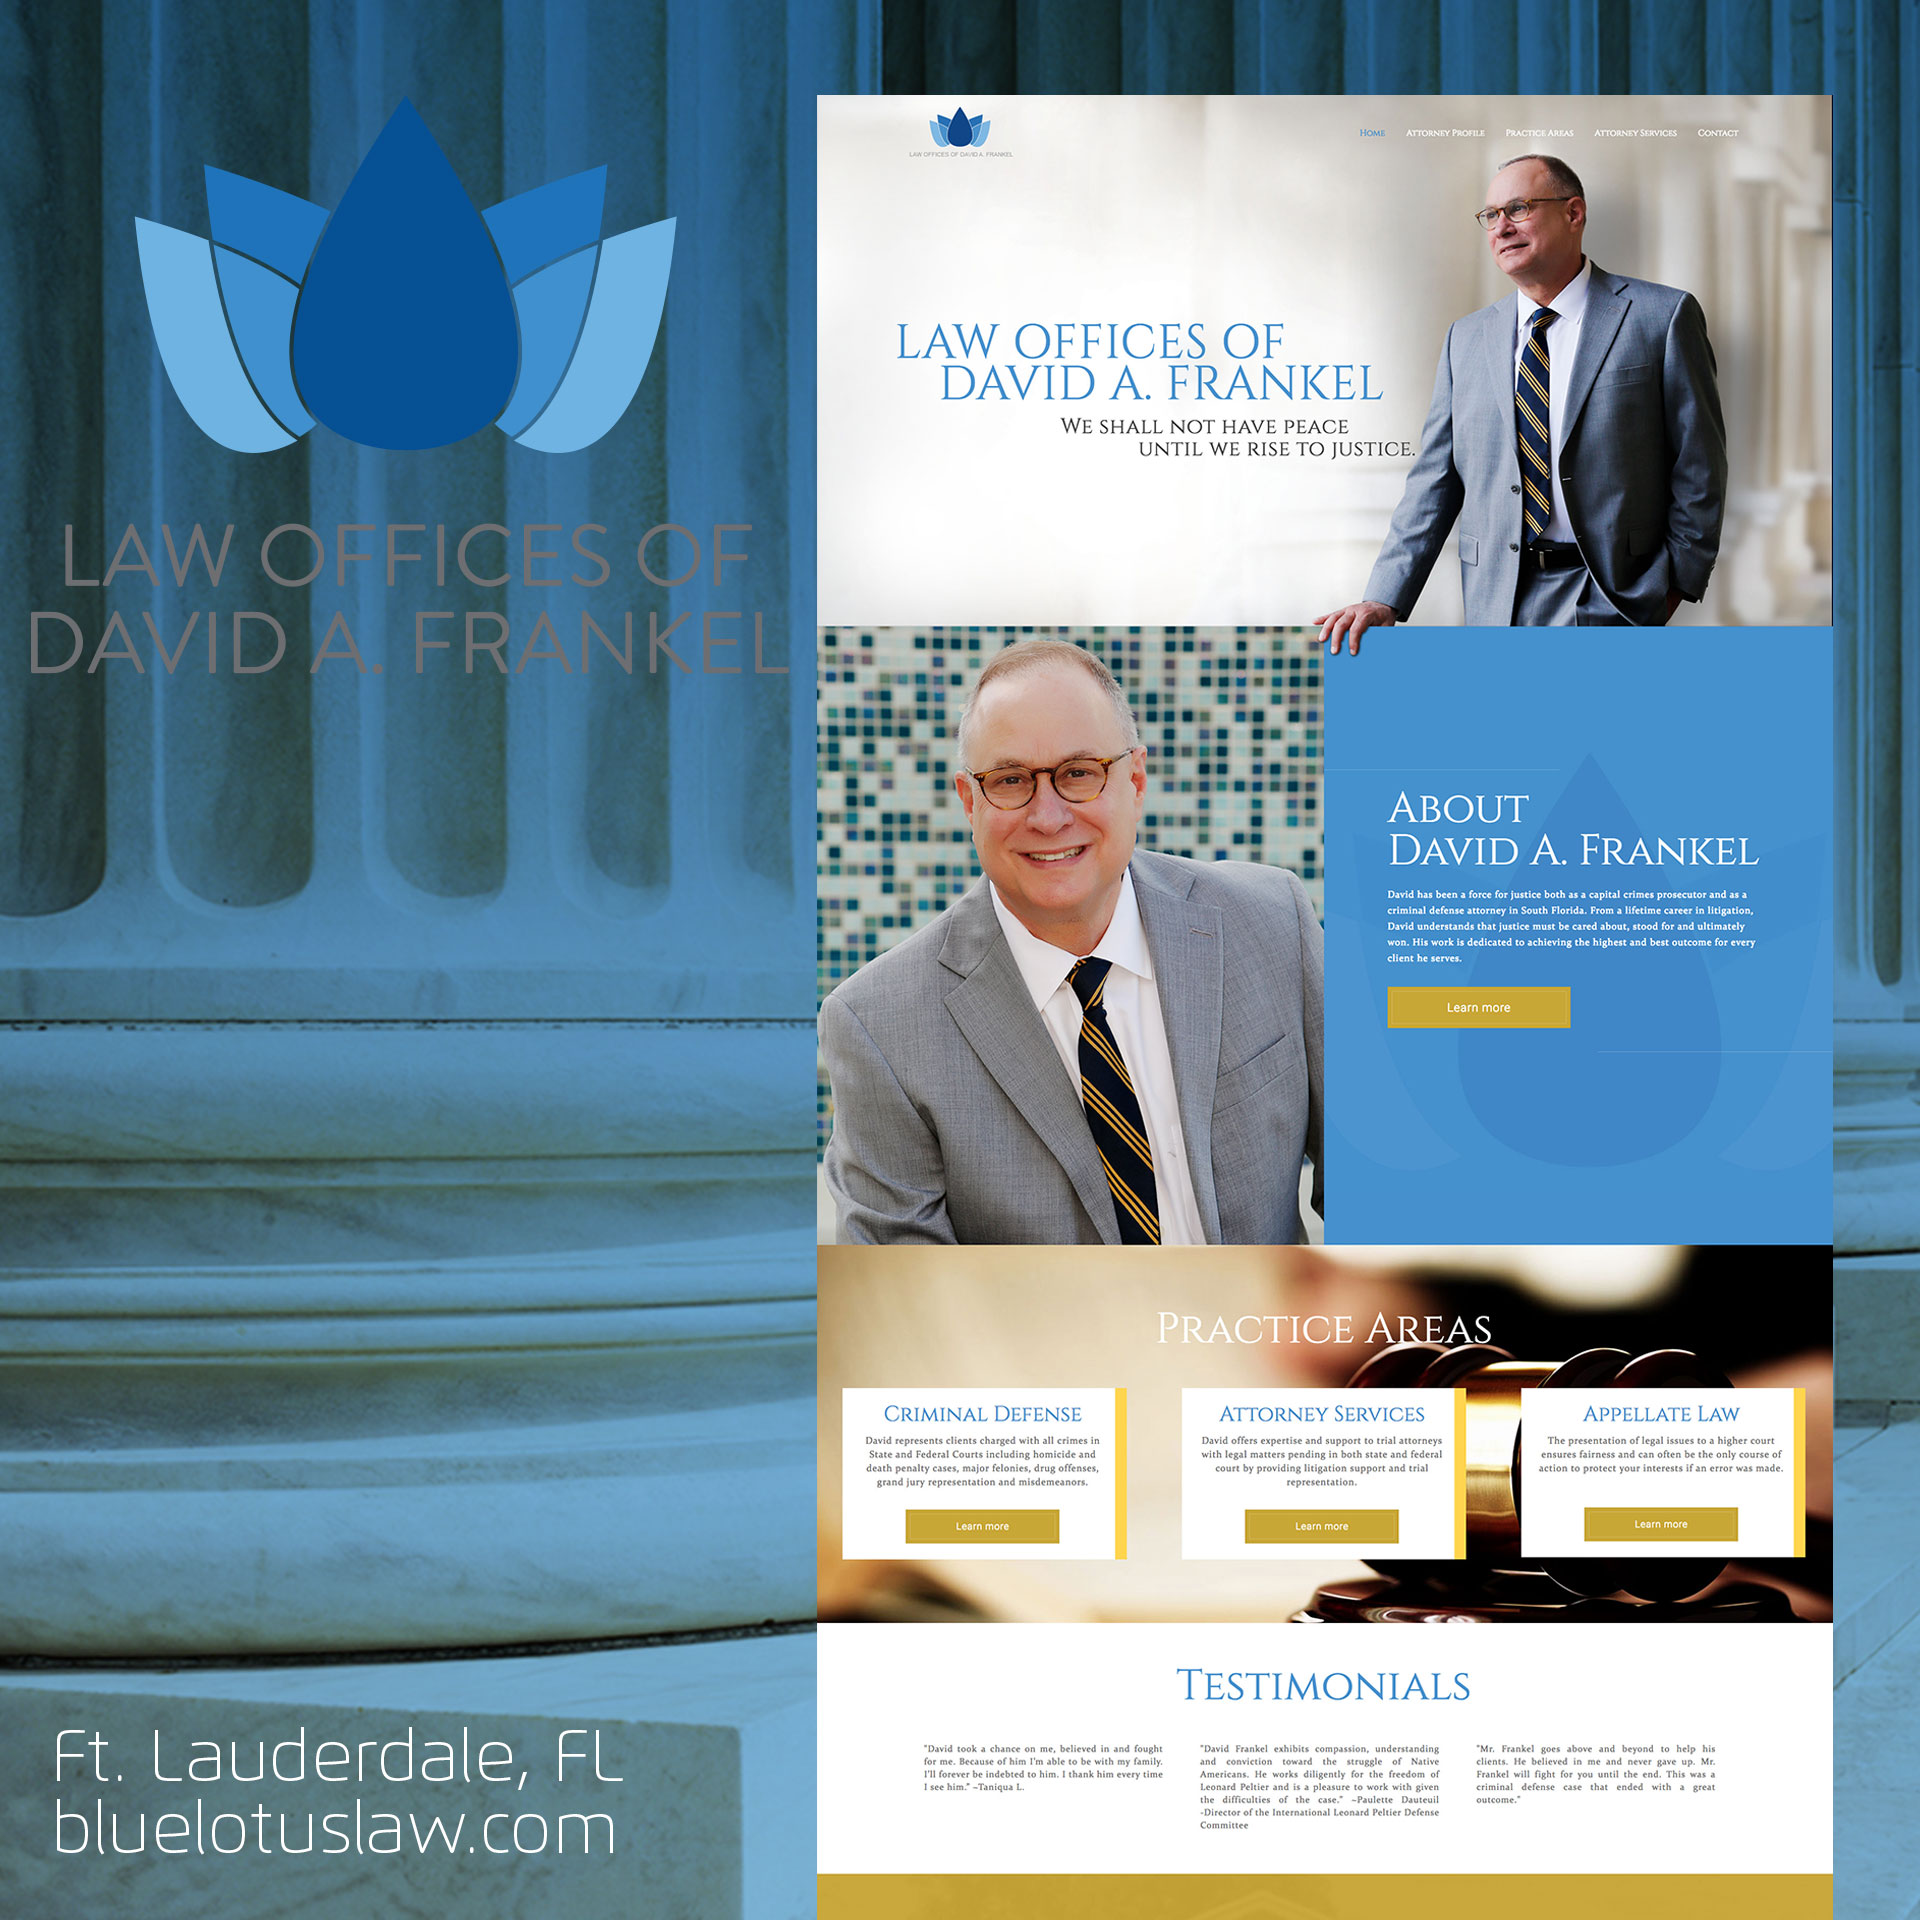 Law Offices of David A. Frankel